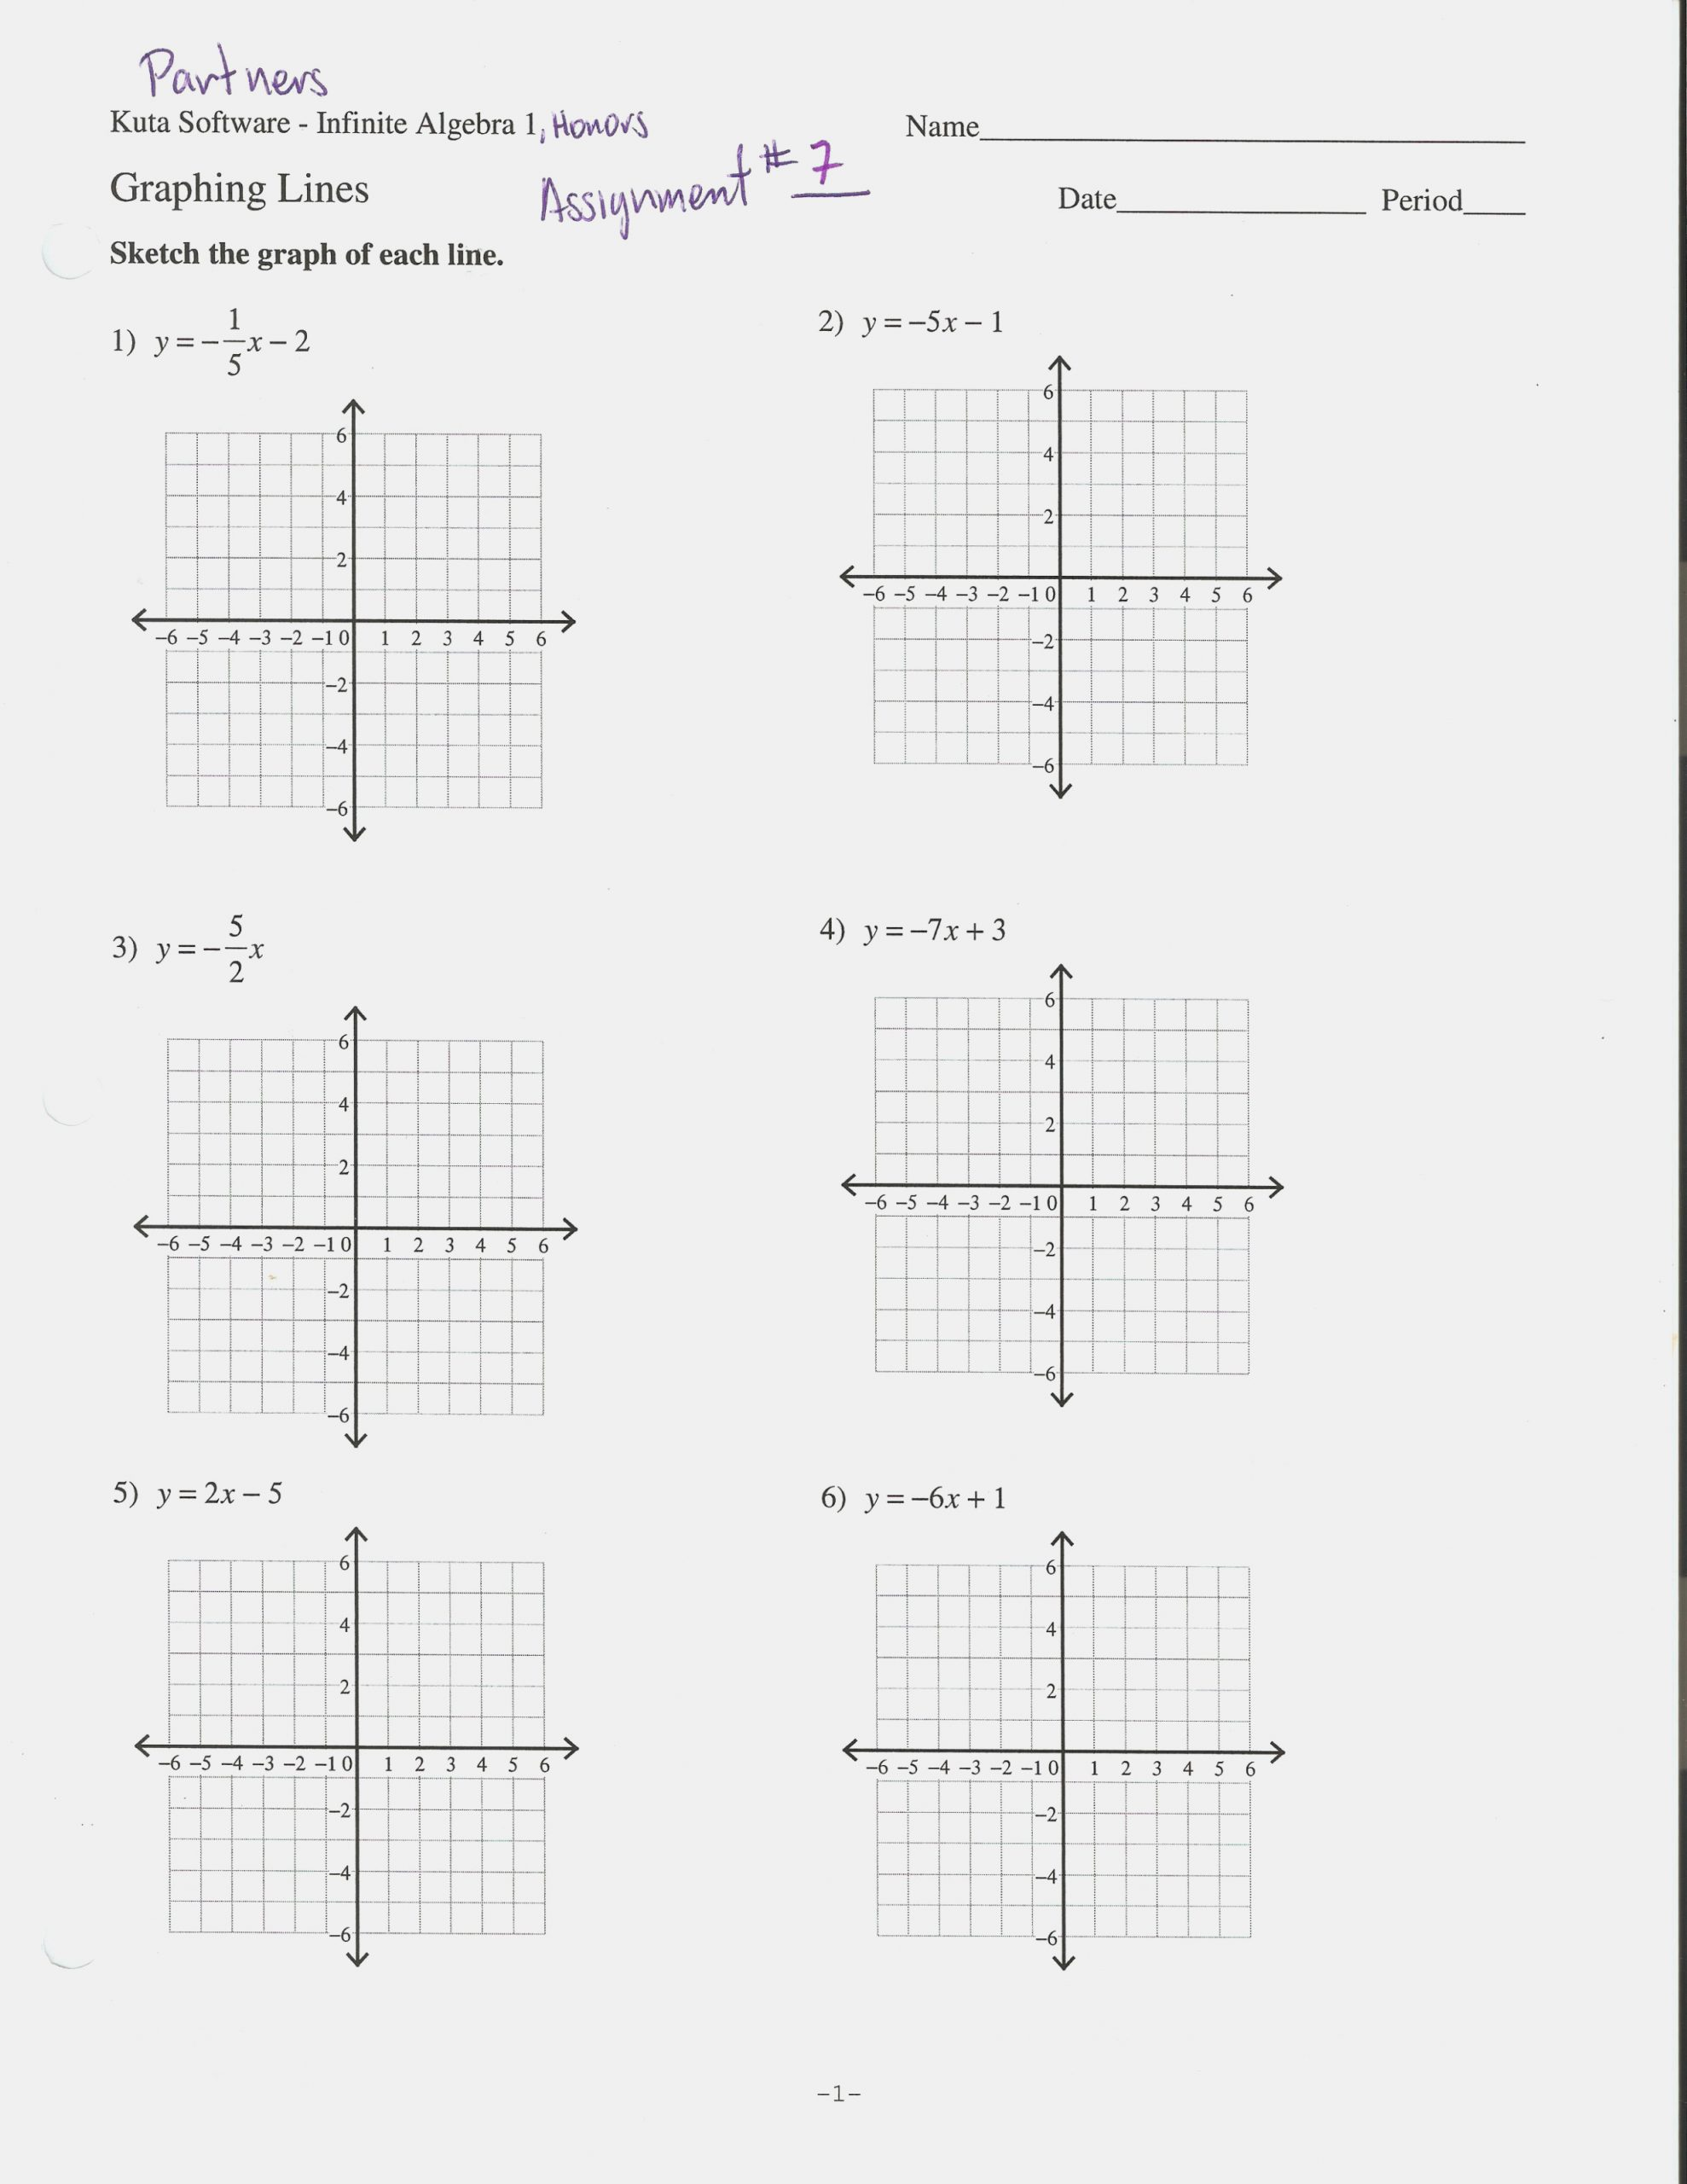 Graphing Linear Inequalities Worksheet Answers Lovely Linear Equations Worksheet with Answers